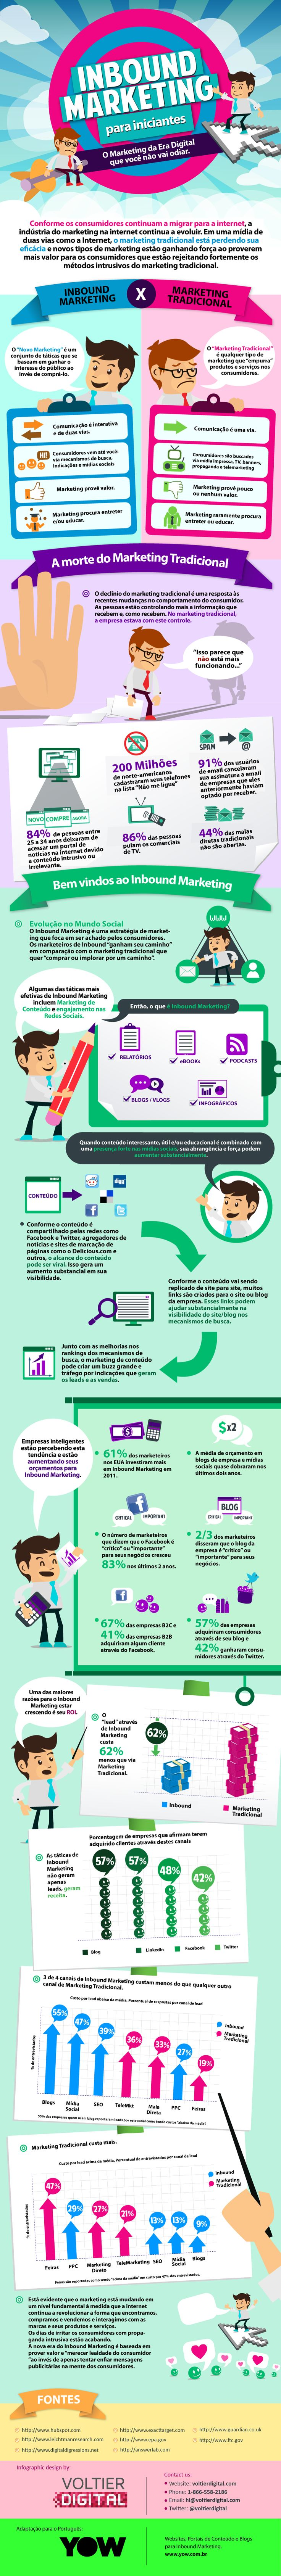 Infografico sobre #inboundmarketing. #marketingdigital. #ficadica